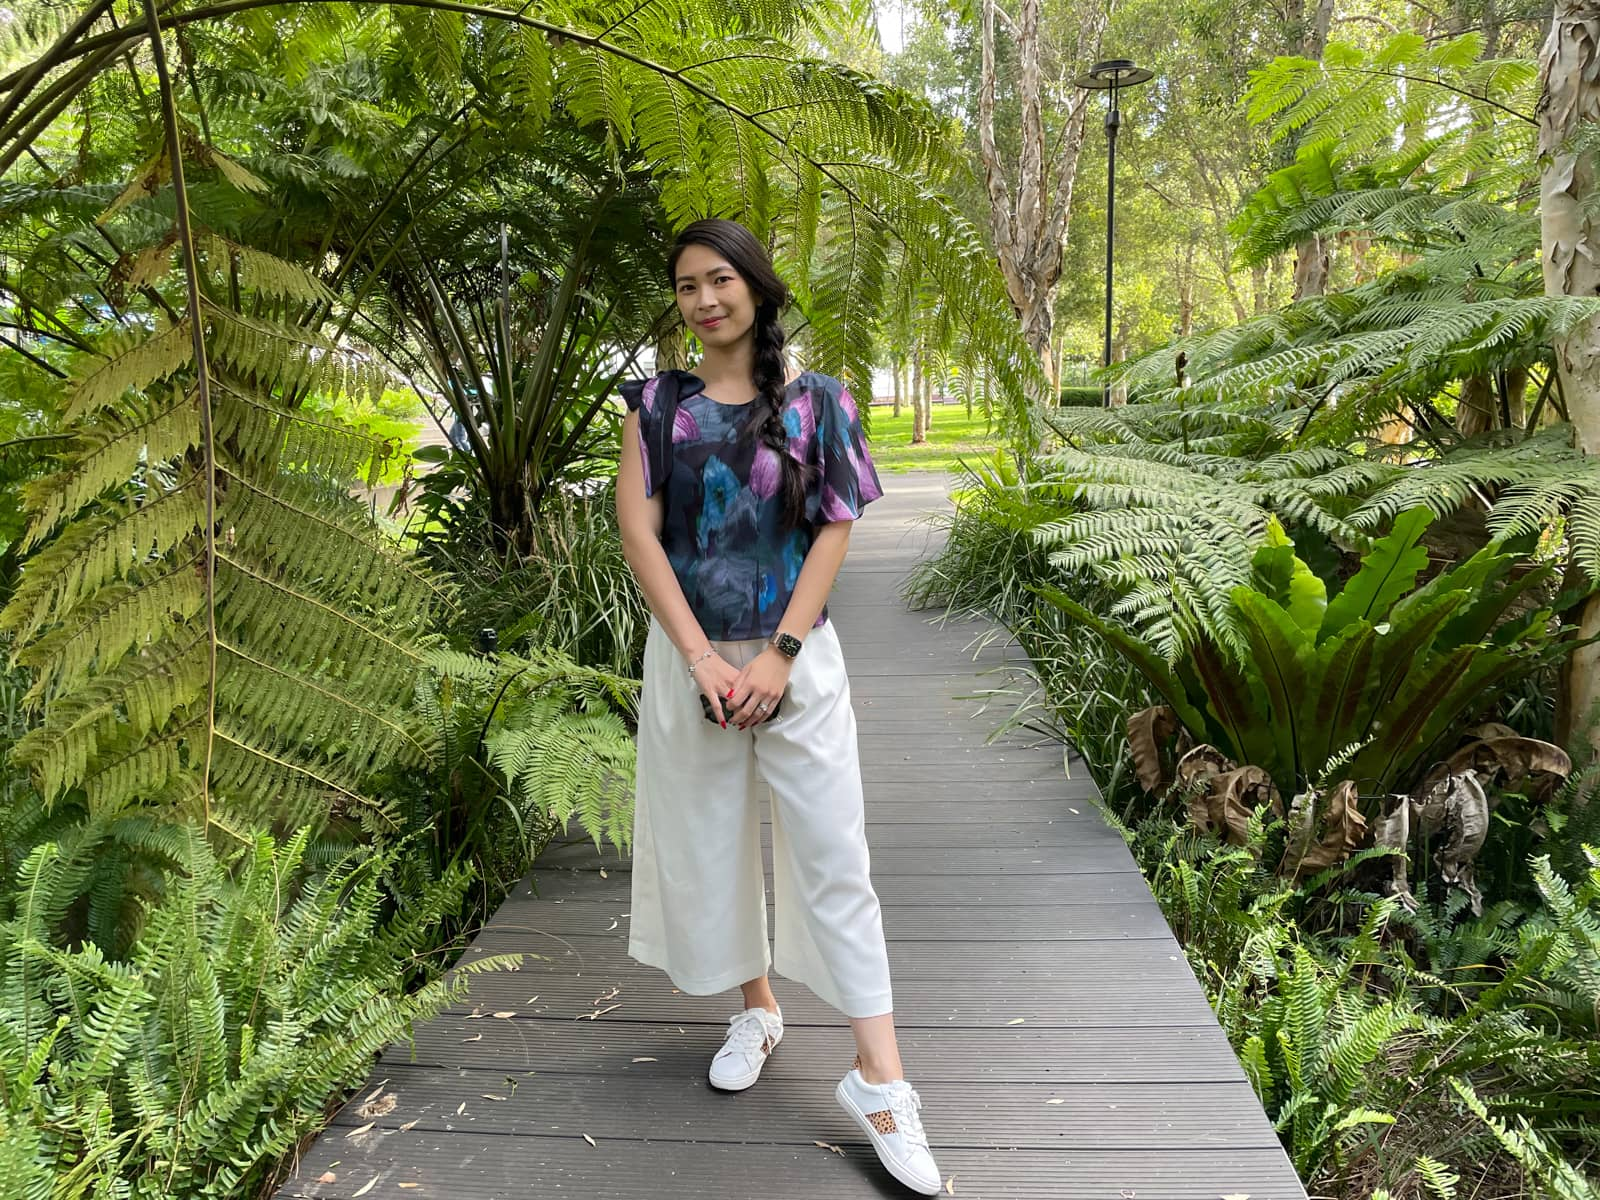 A woman with fair skin and long dark hair braided loosely in a side braid. She is wearing a patterned top and white culottes, and standing on a boardwalk surrounded by fern-like trees.